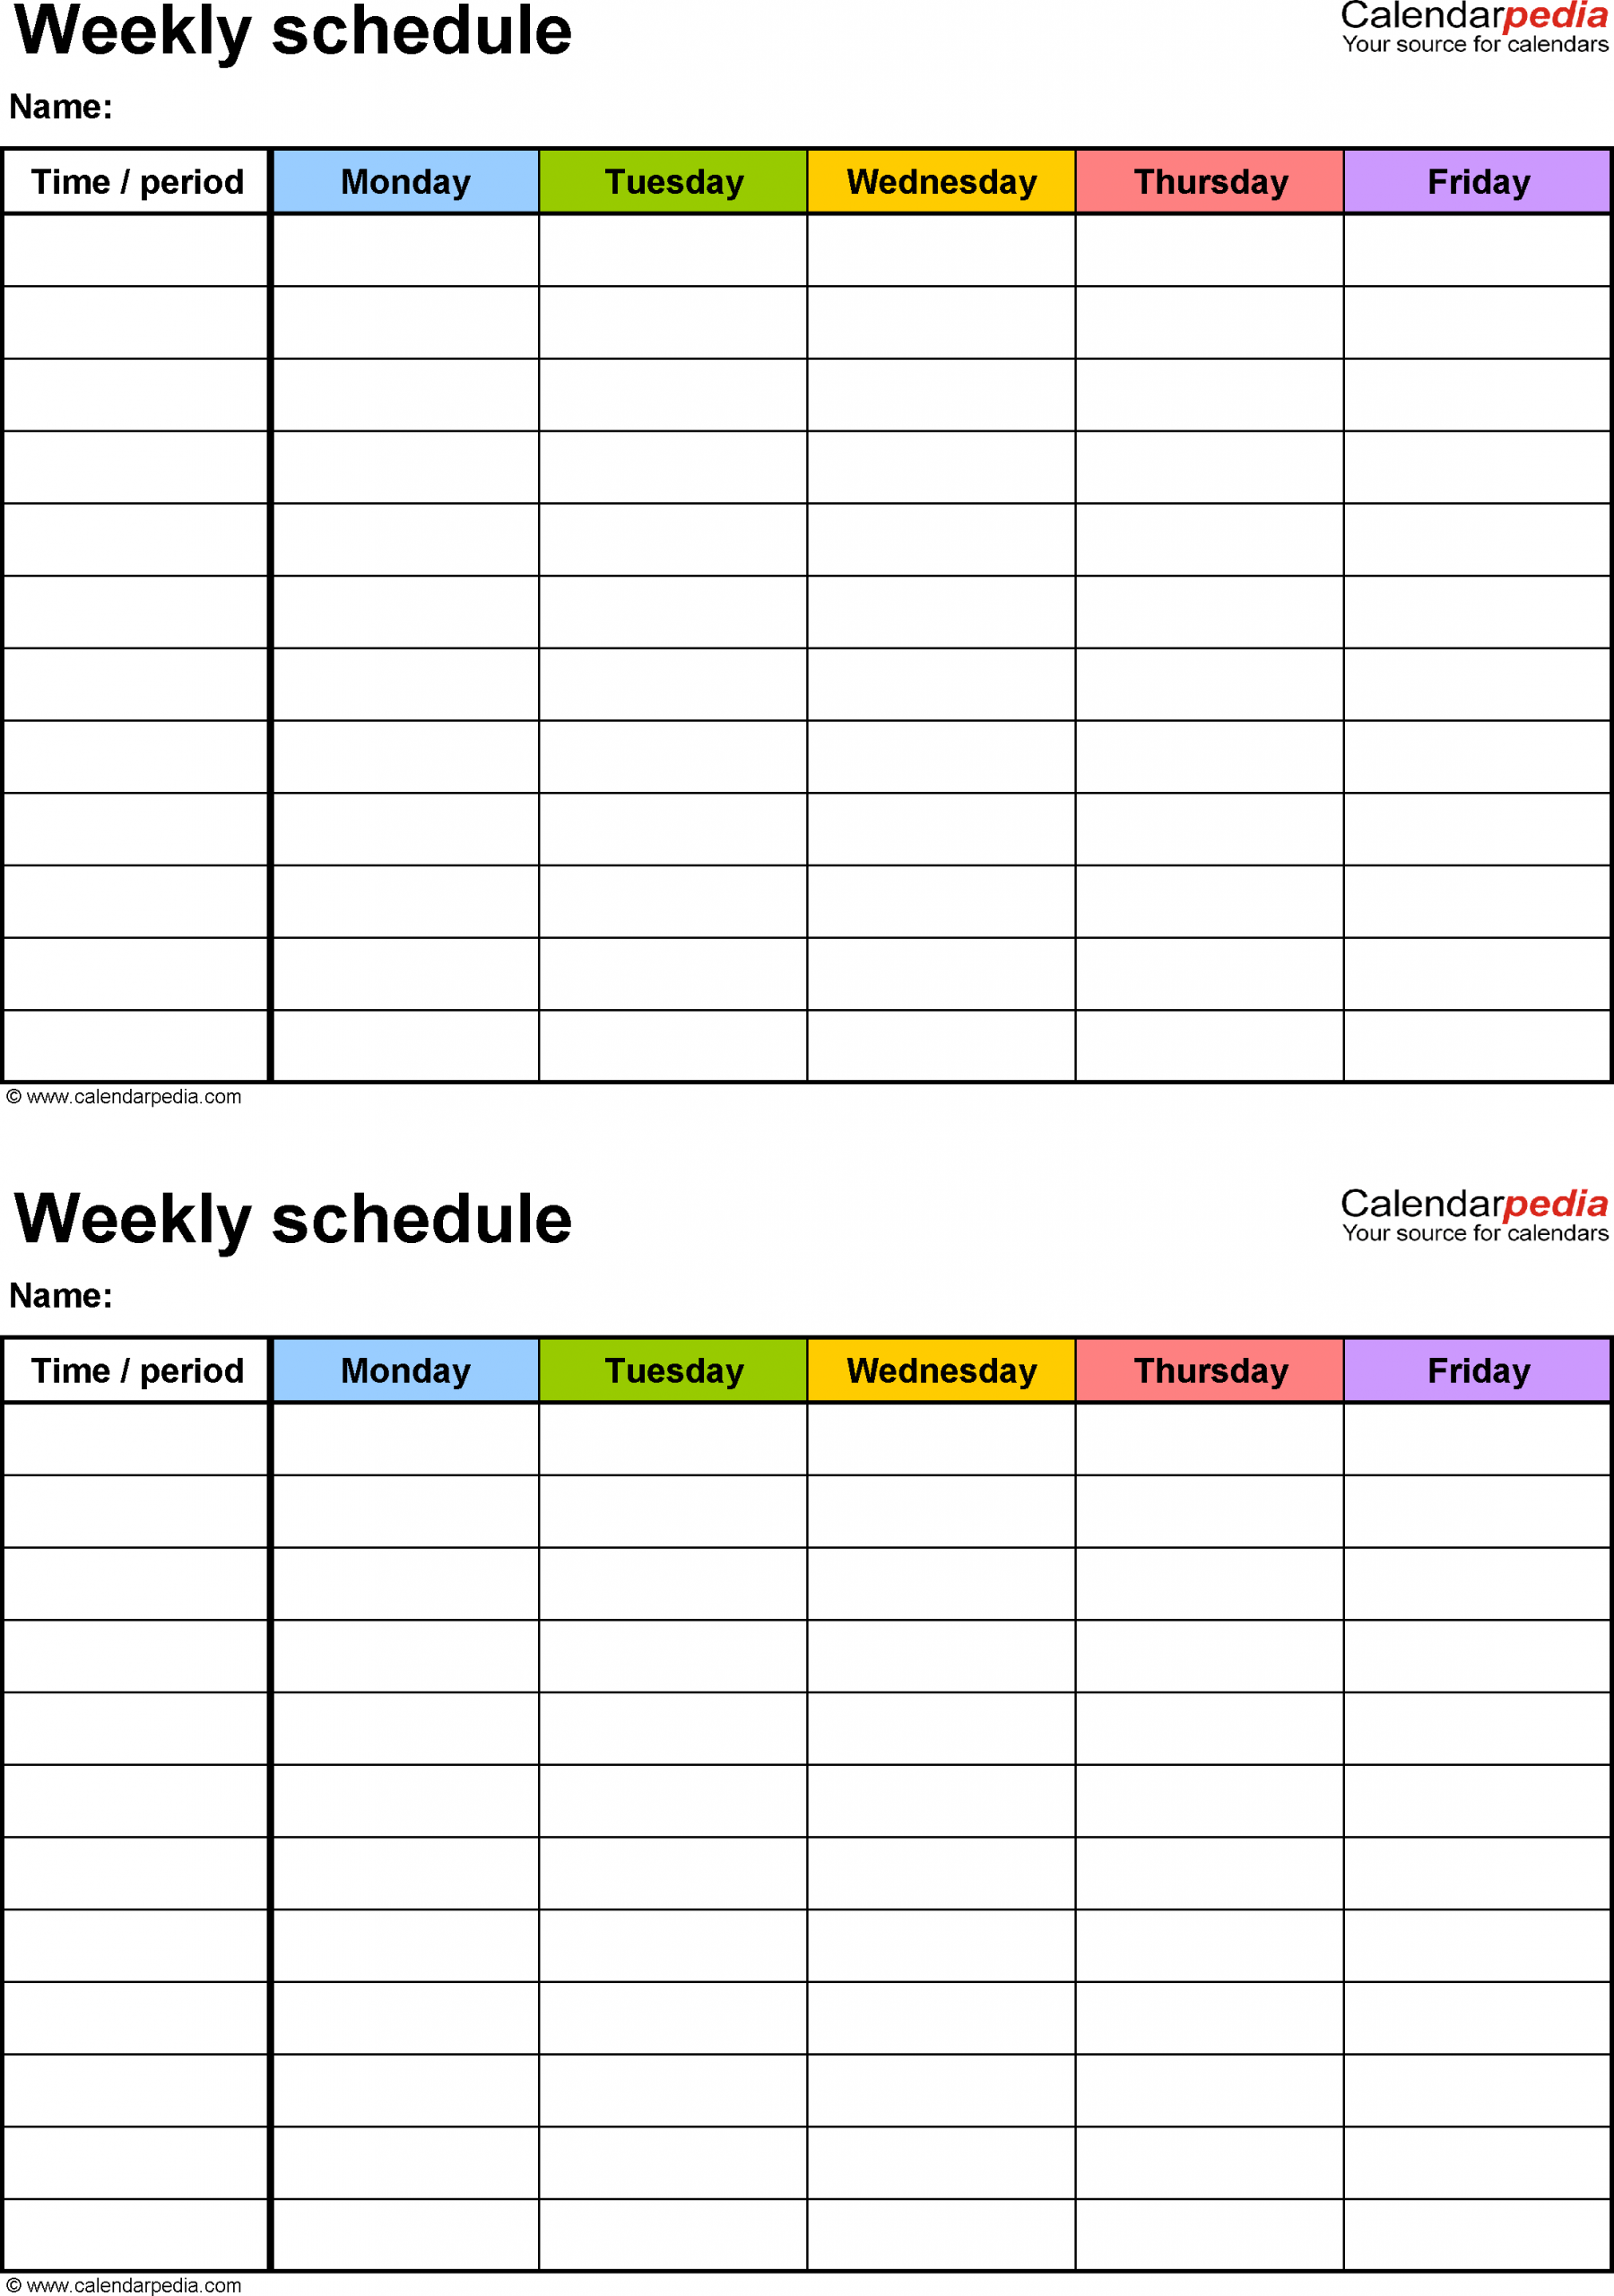 Weekly Schedule Template For Excel Version 3: 2 Schedules Blank Time Table For 7 Days